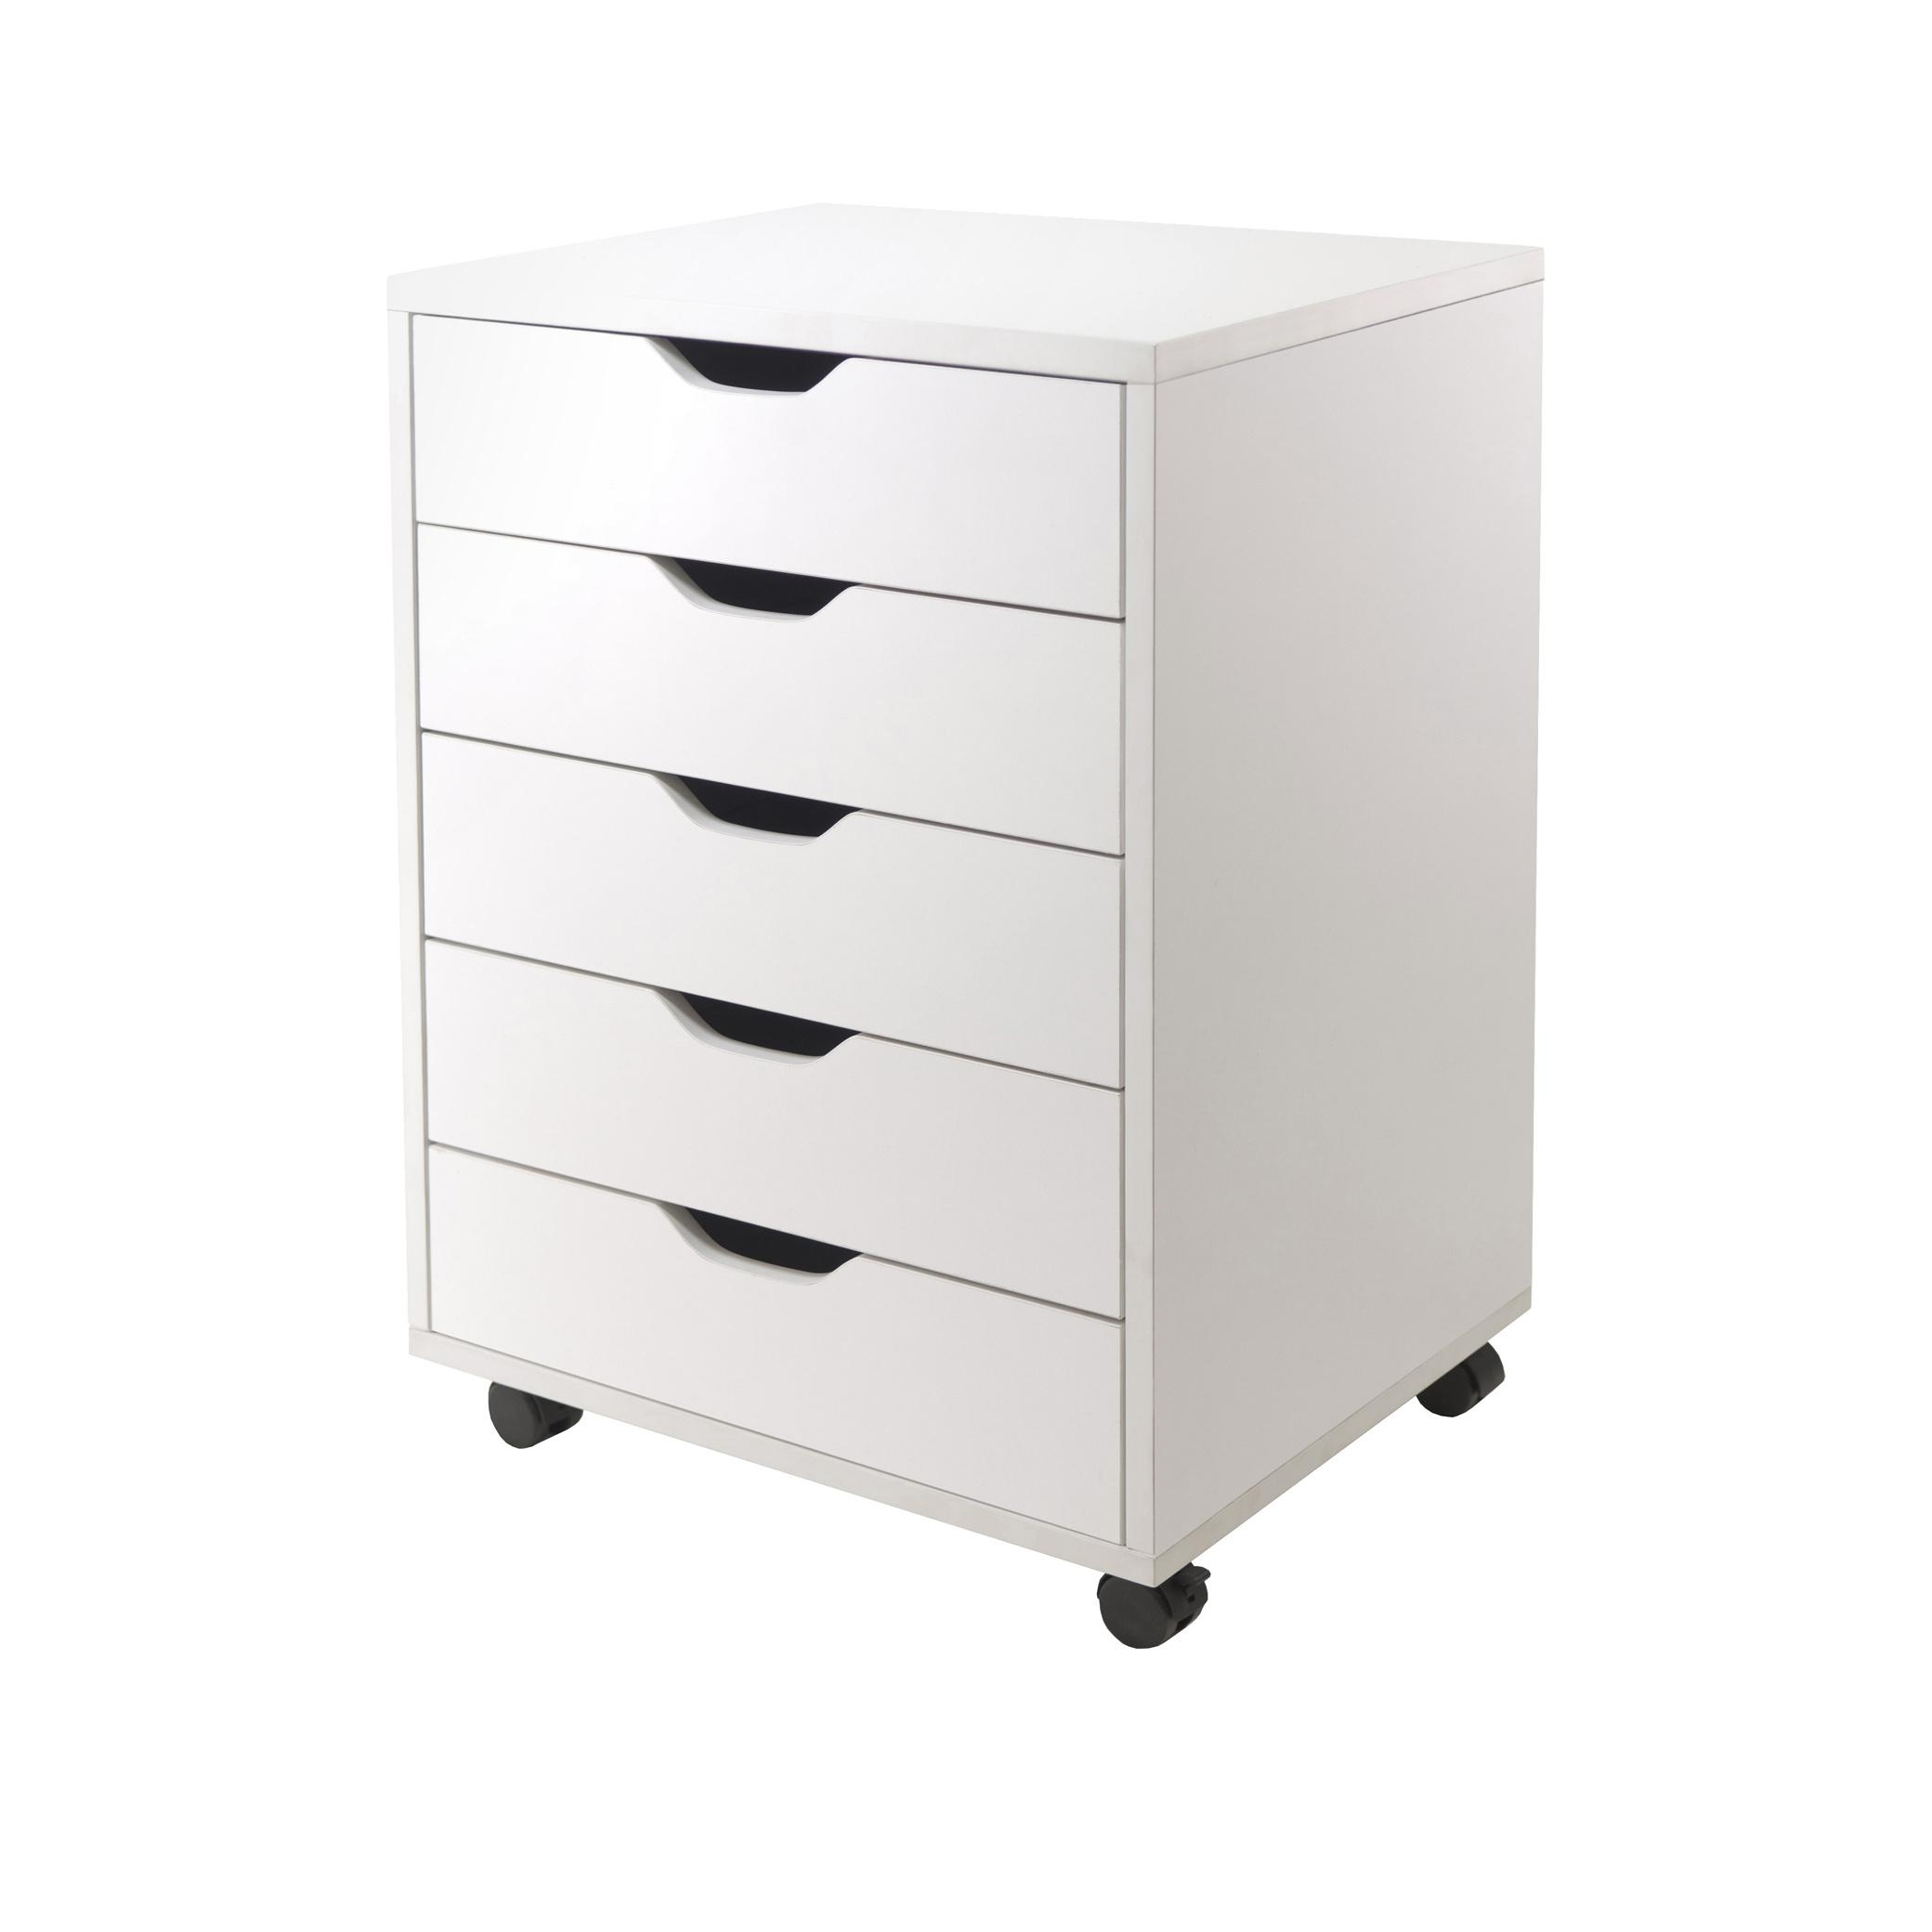 Large Storage Cabinet With Drawers